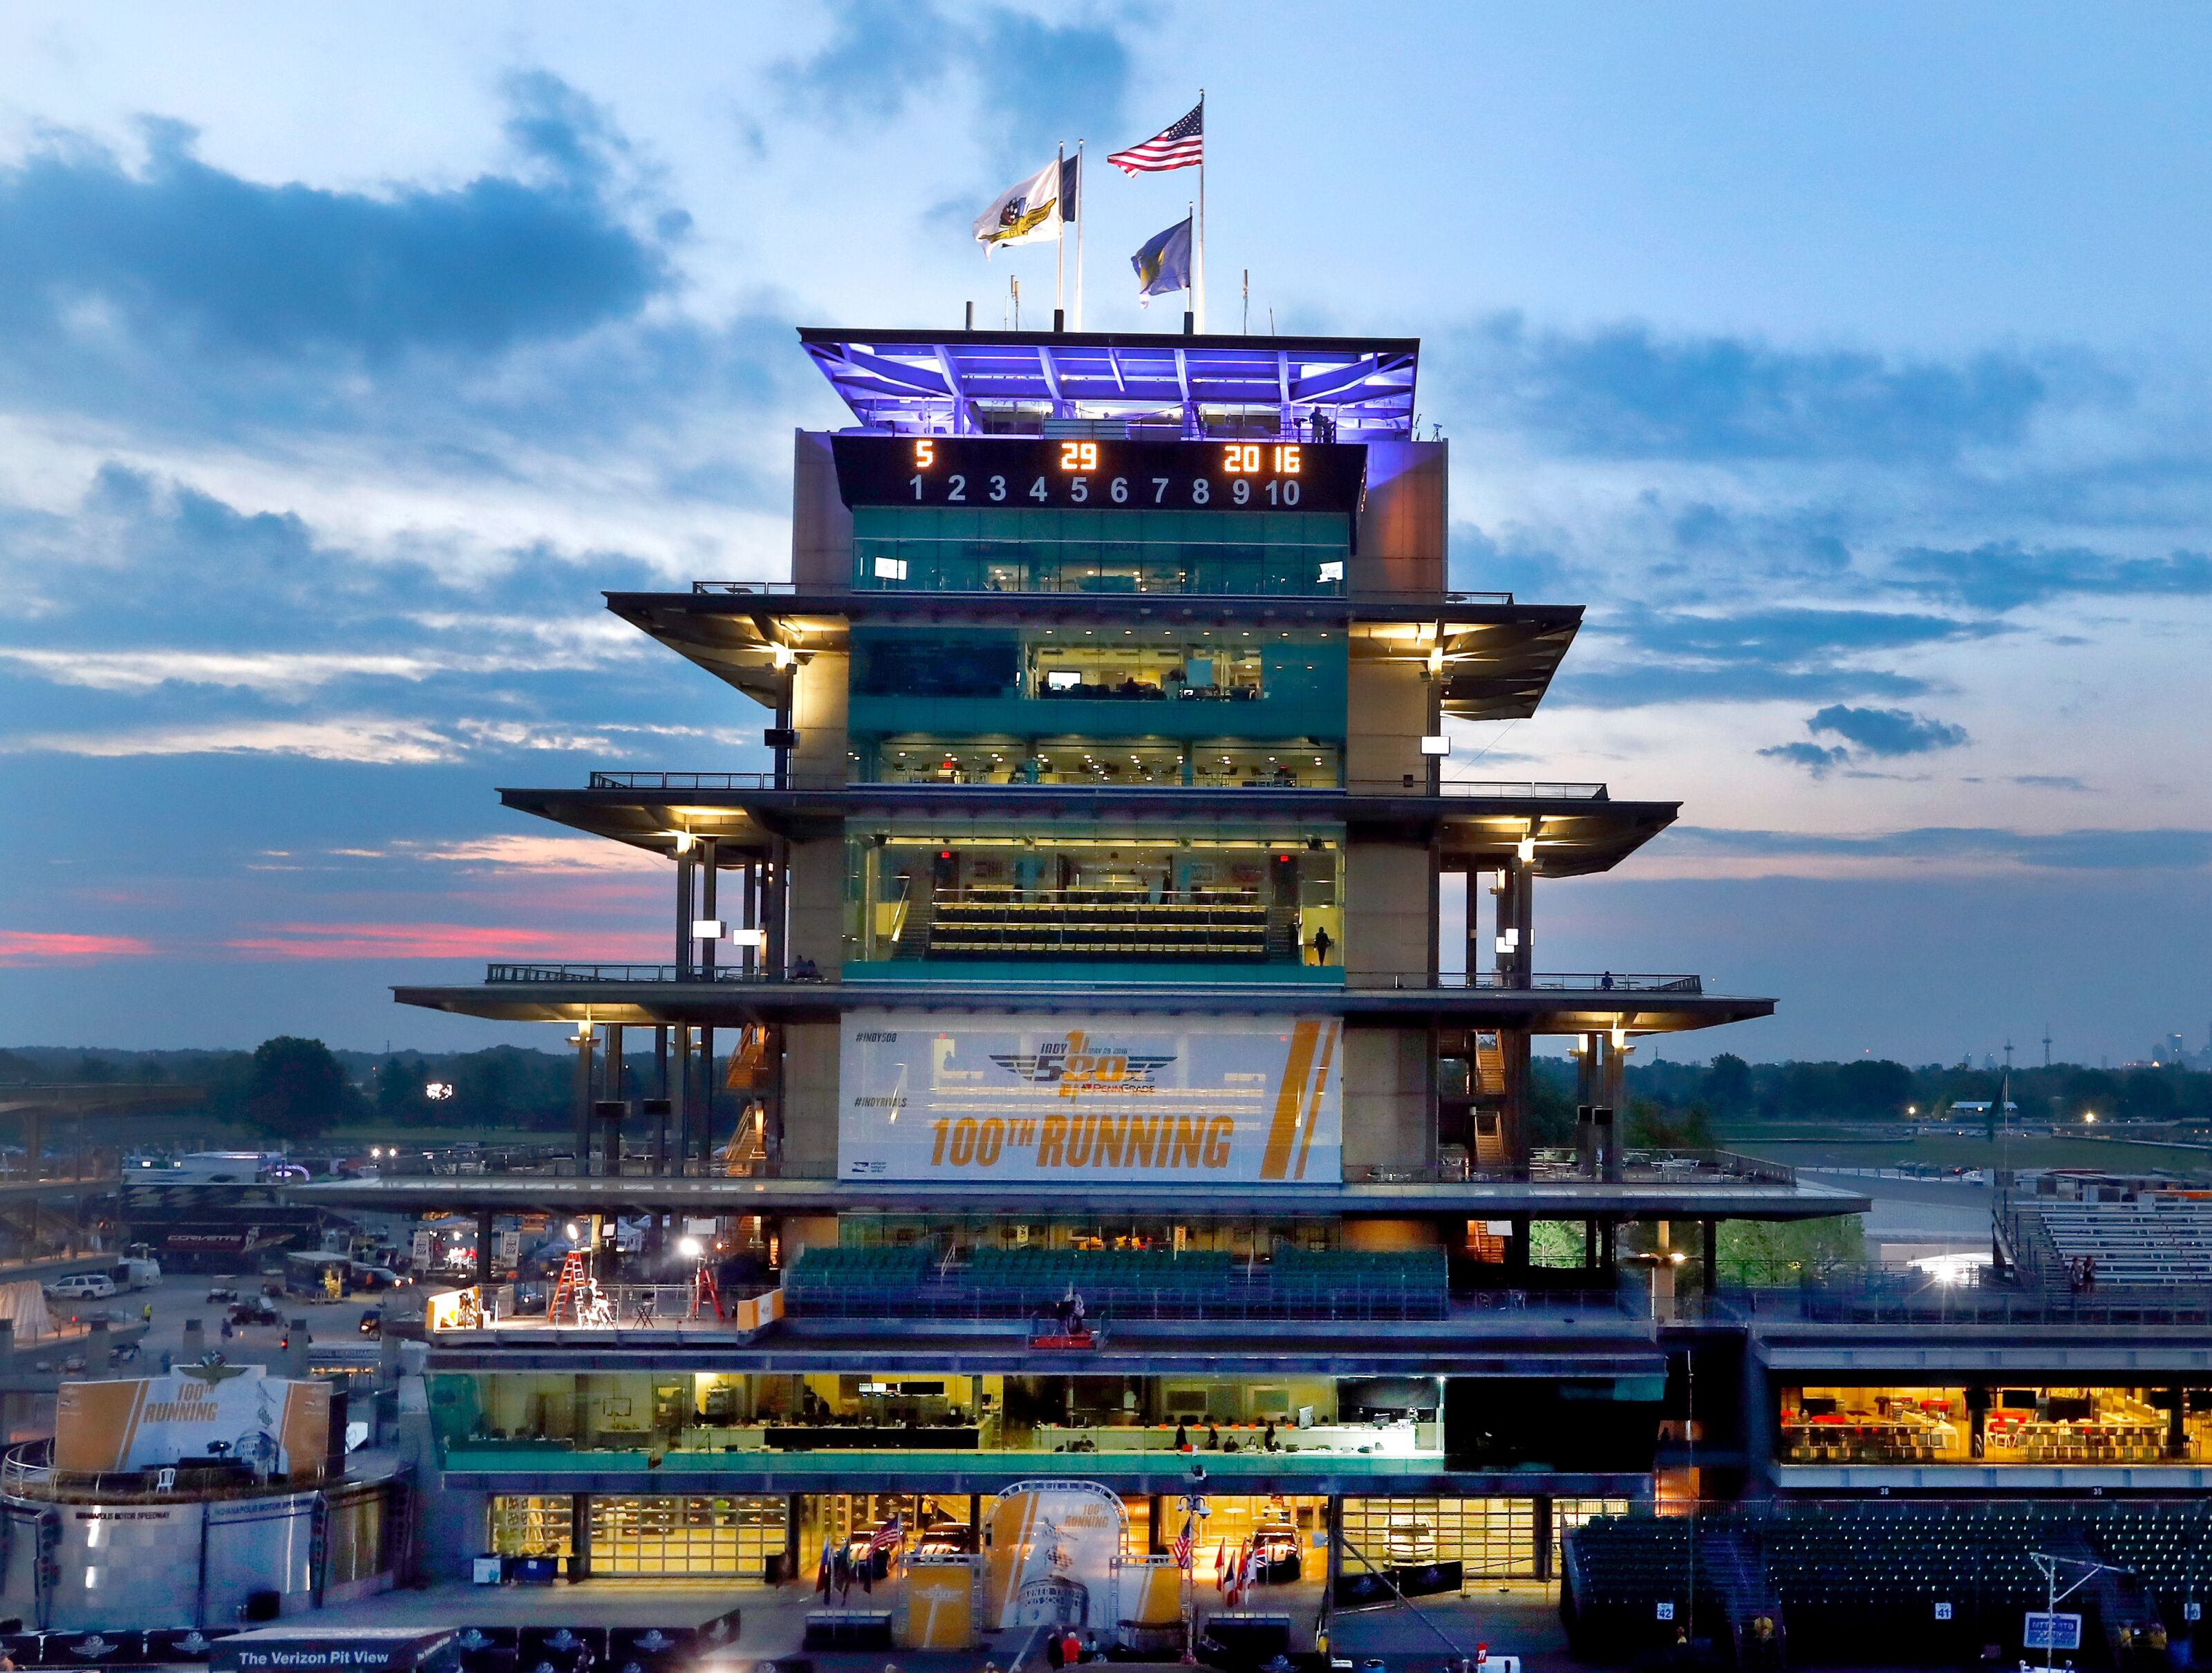 2019 Indy 500: Original practice schedule to resume tomorrow